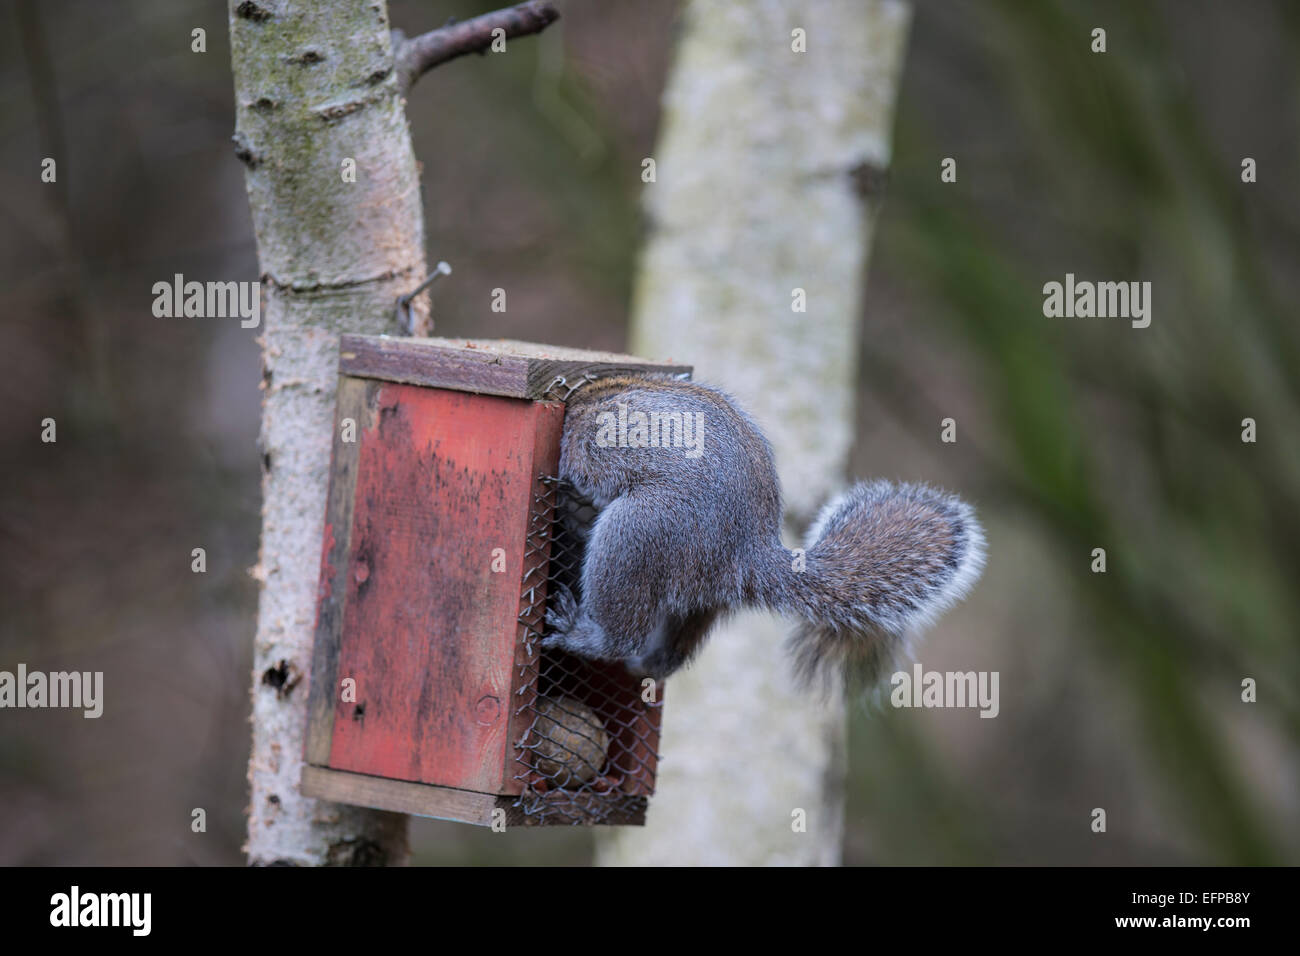 Grey squirrel Eastern gray squirrel Sciurus carolinensis raiding a bird feeder and wedged in the opening - Stock Image